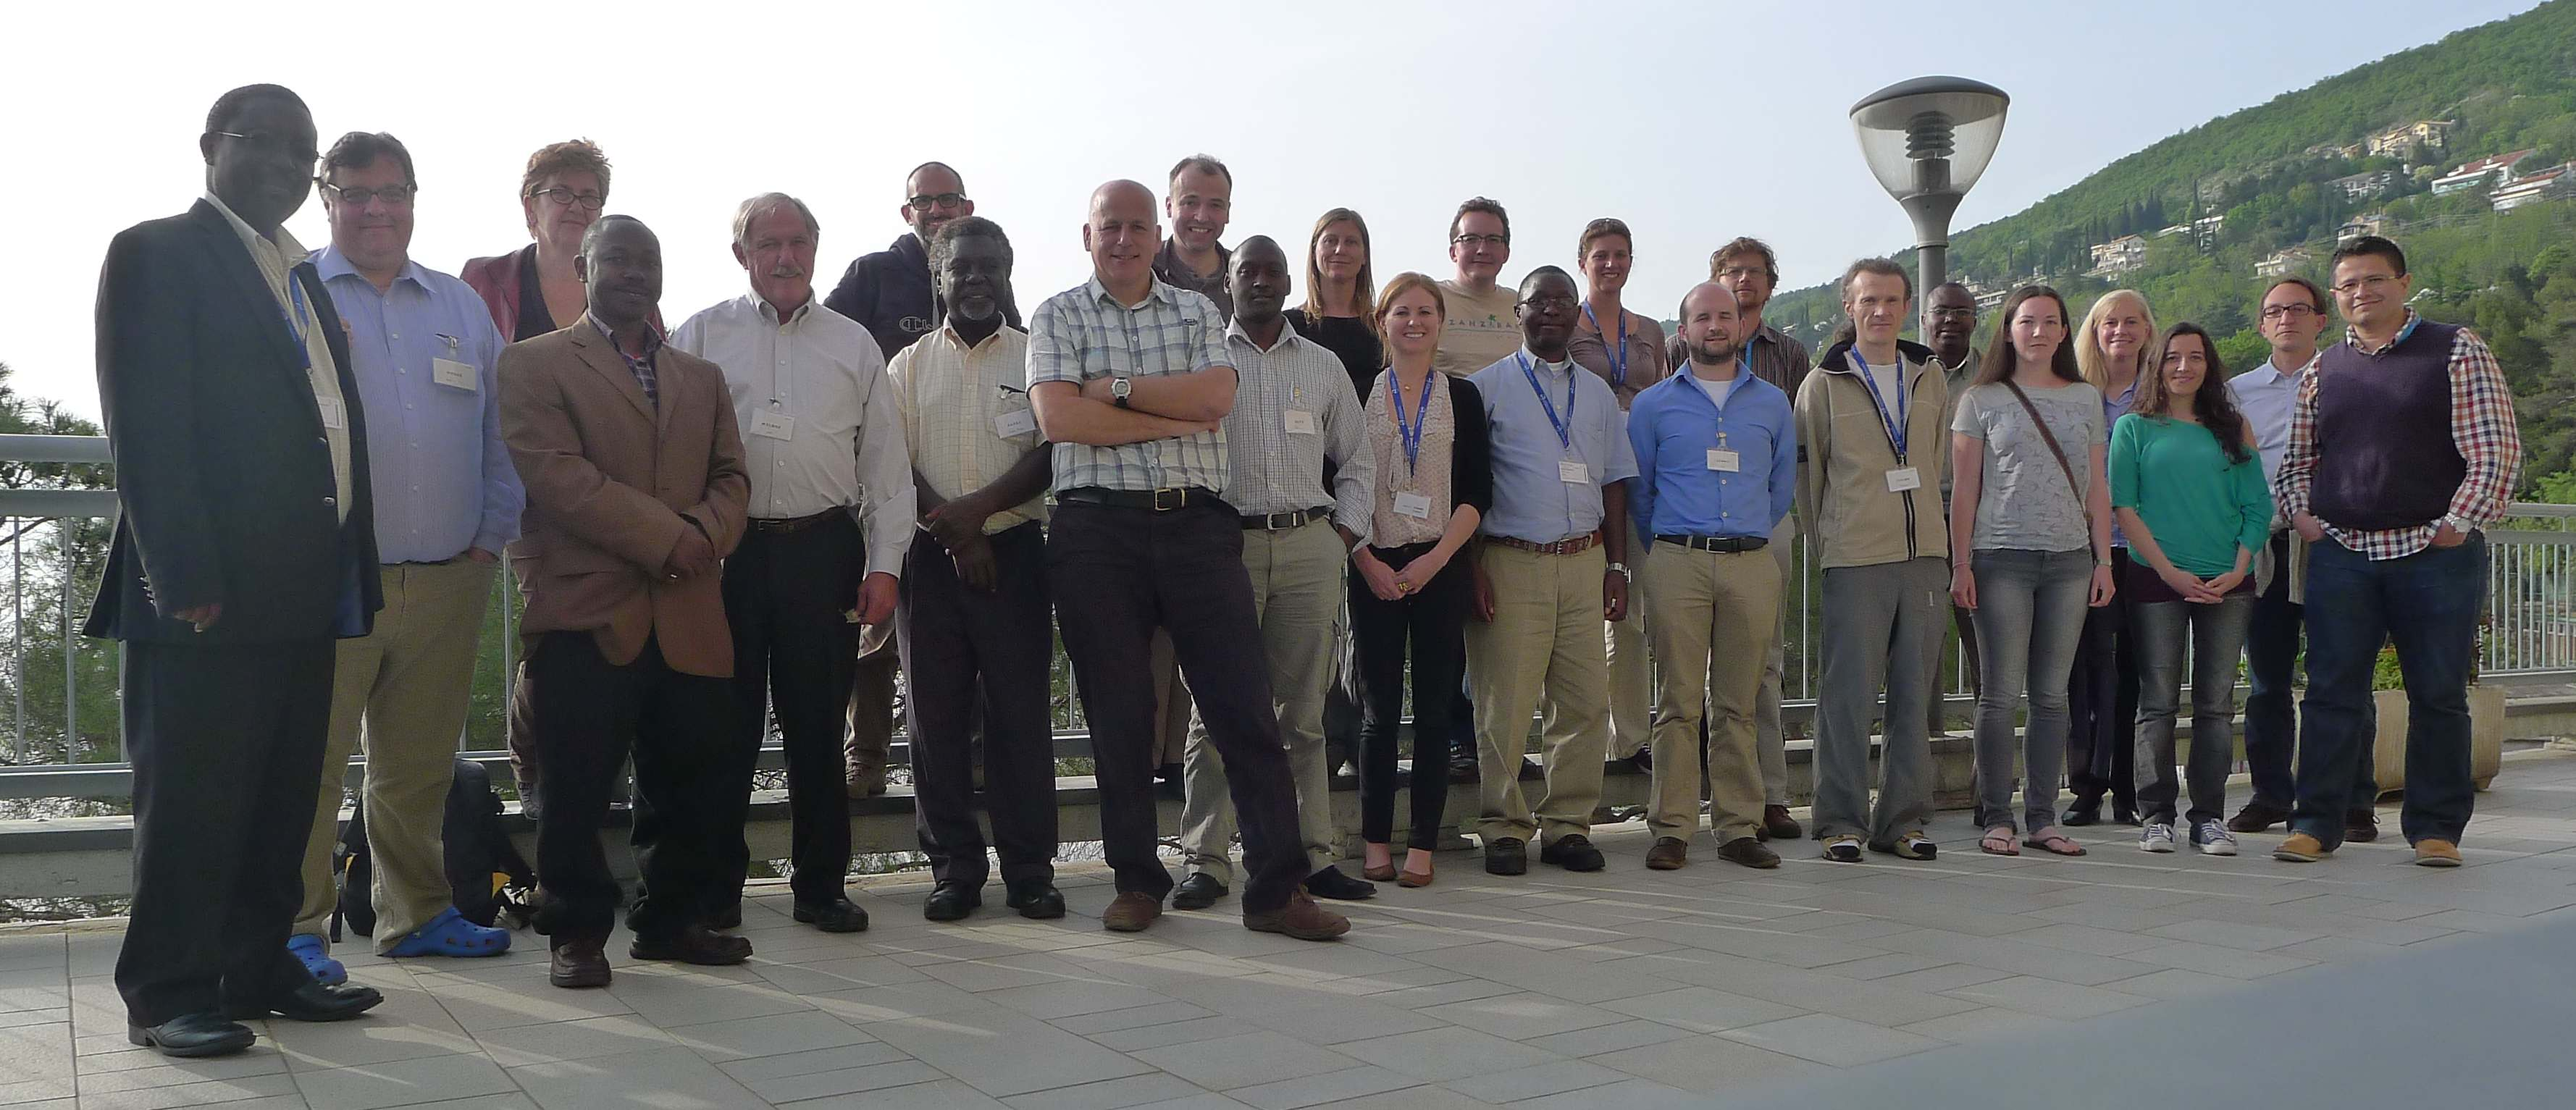 David Taylors group photo ICTP